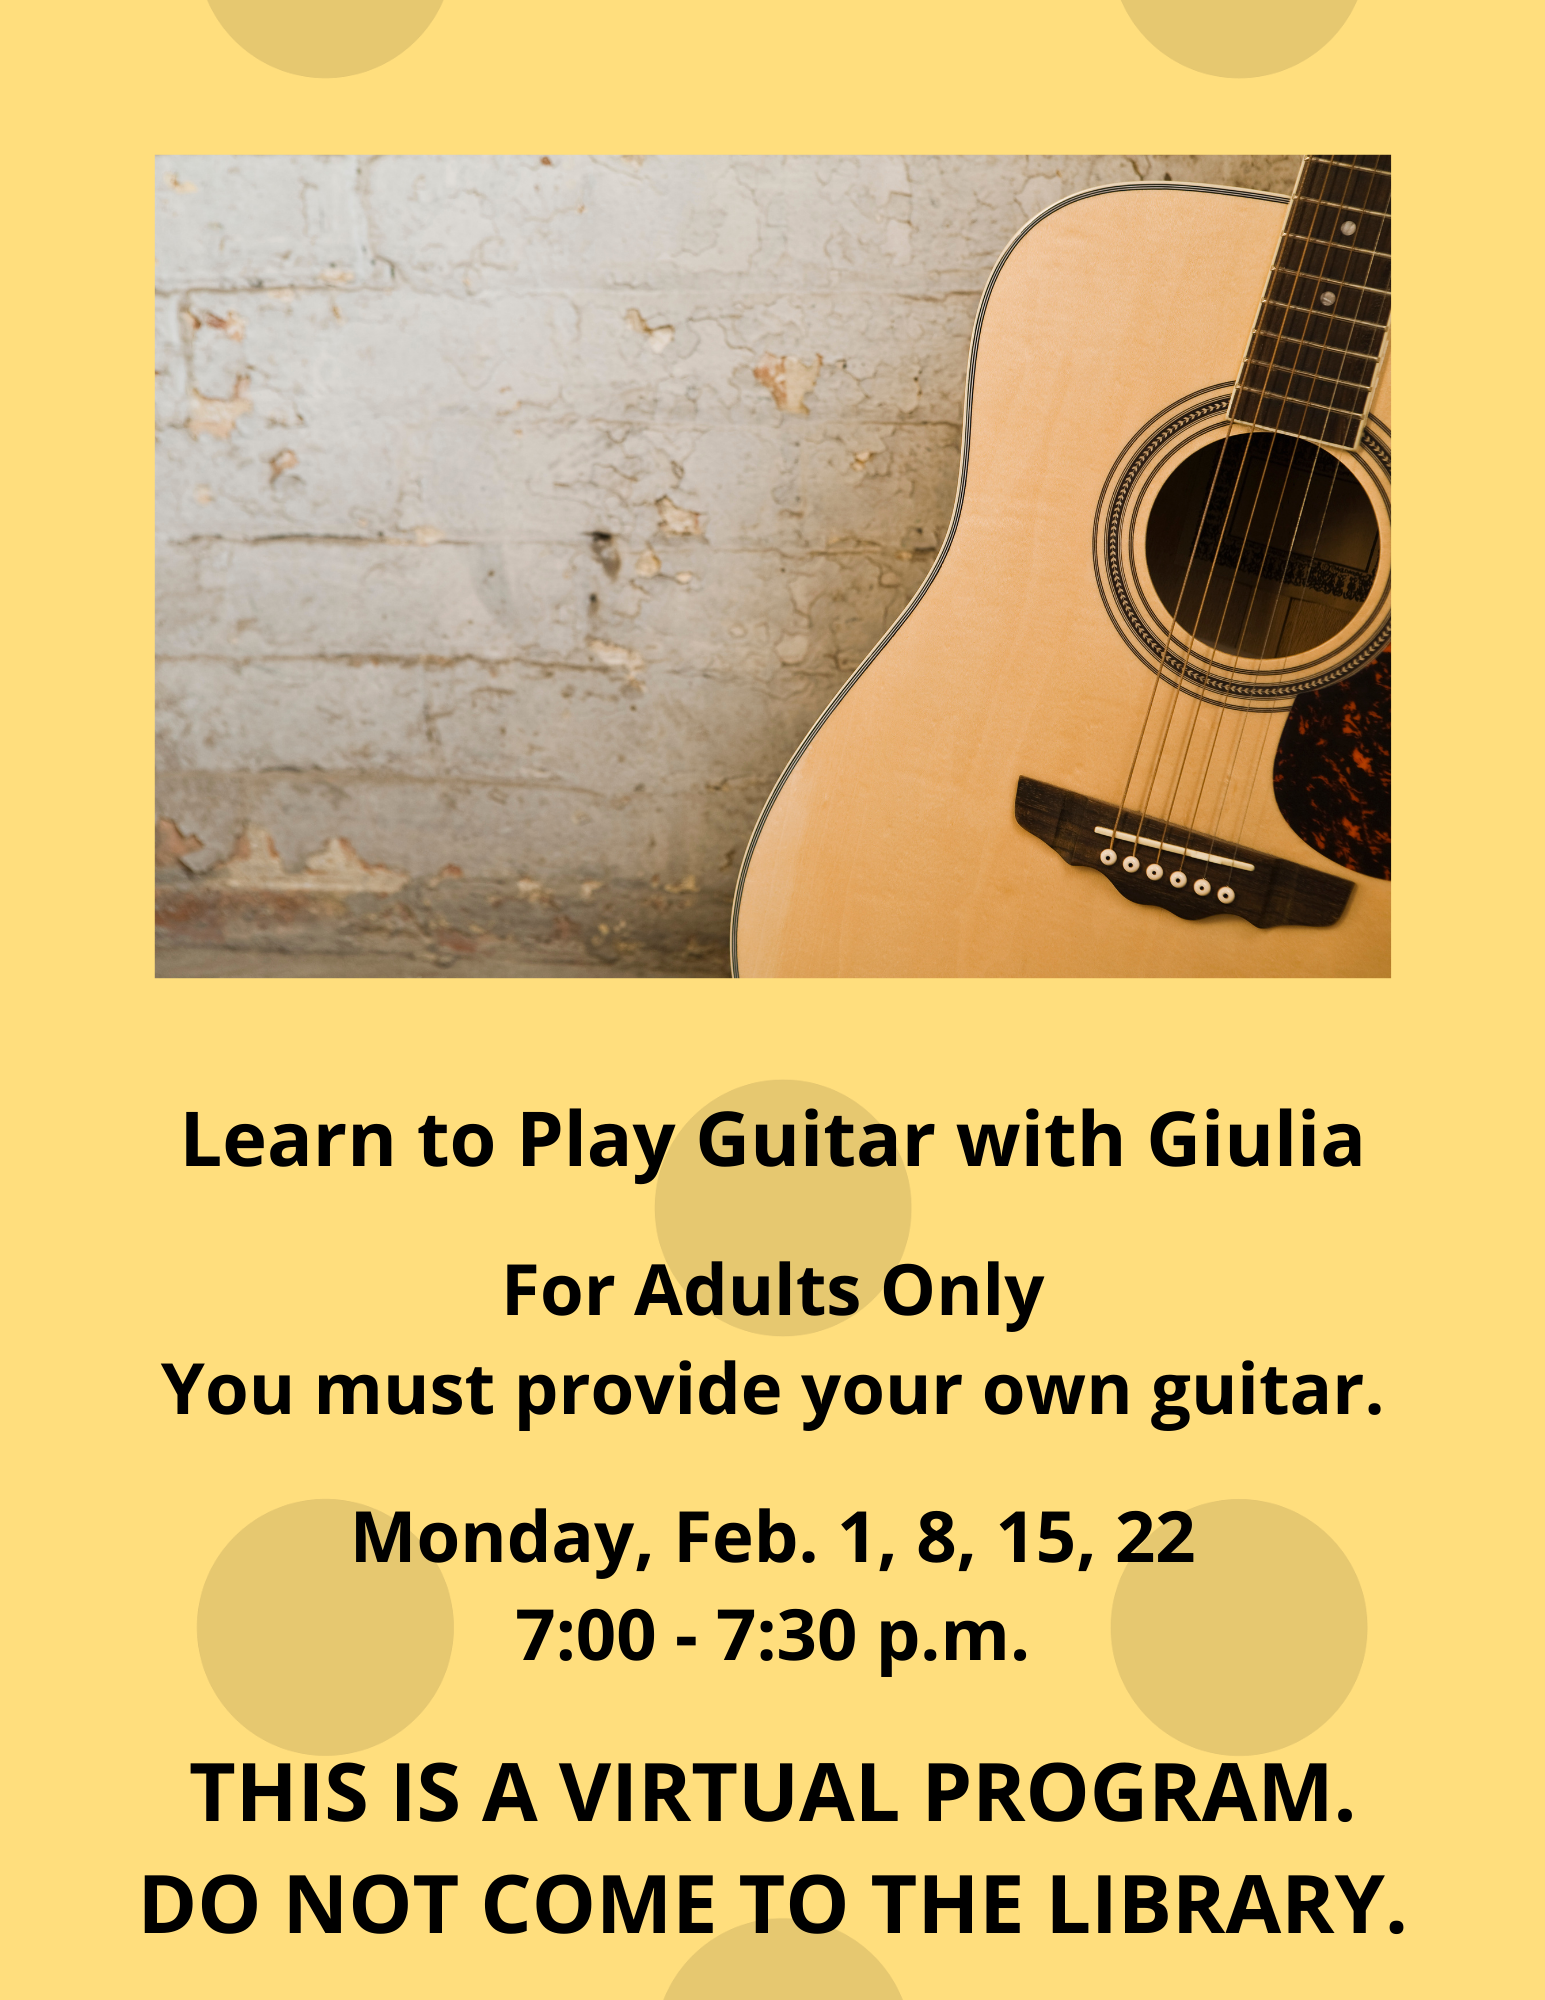 Learn to Play Guitar with Giulia (February 1, 8, 15, 22)